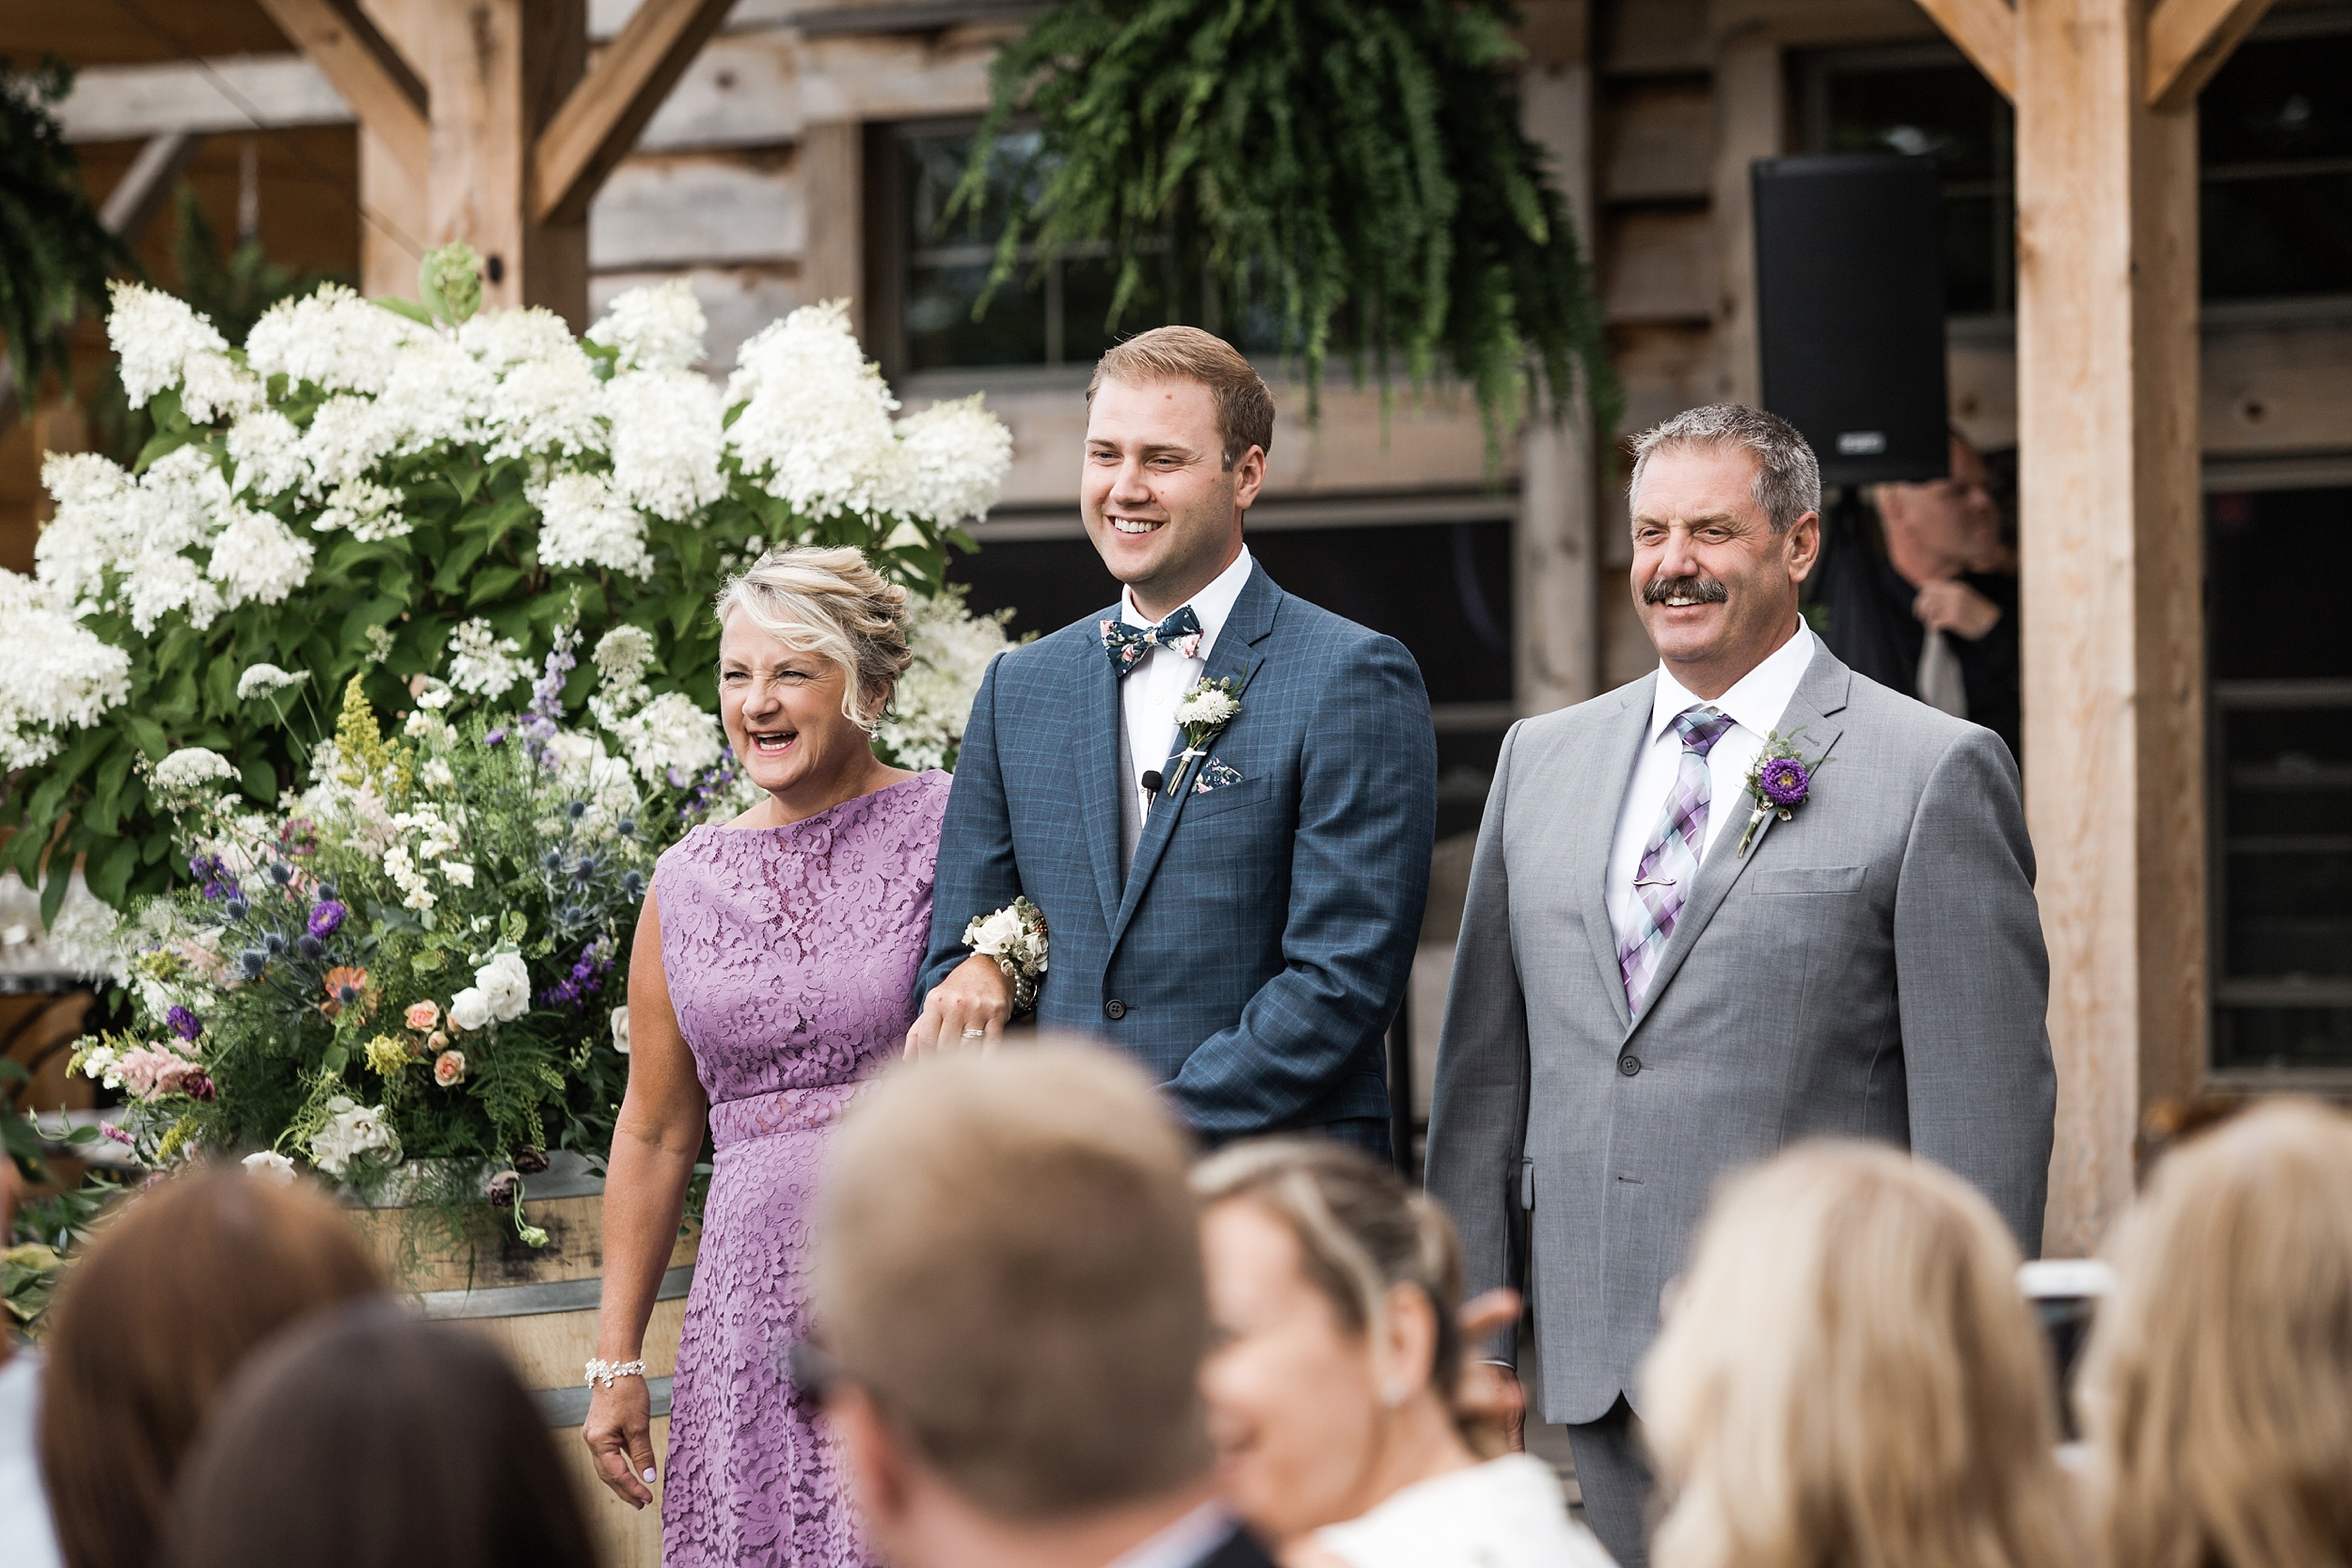 stonewallestates-weddingphotography_0020.jpg